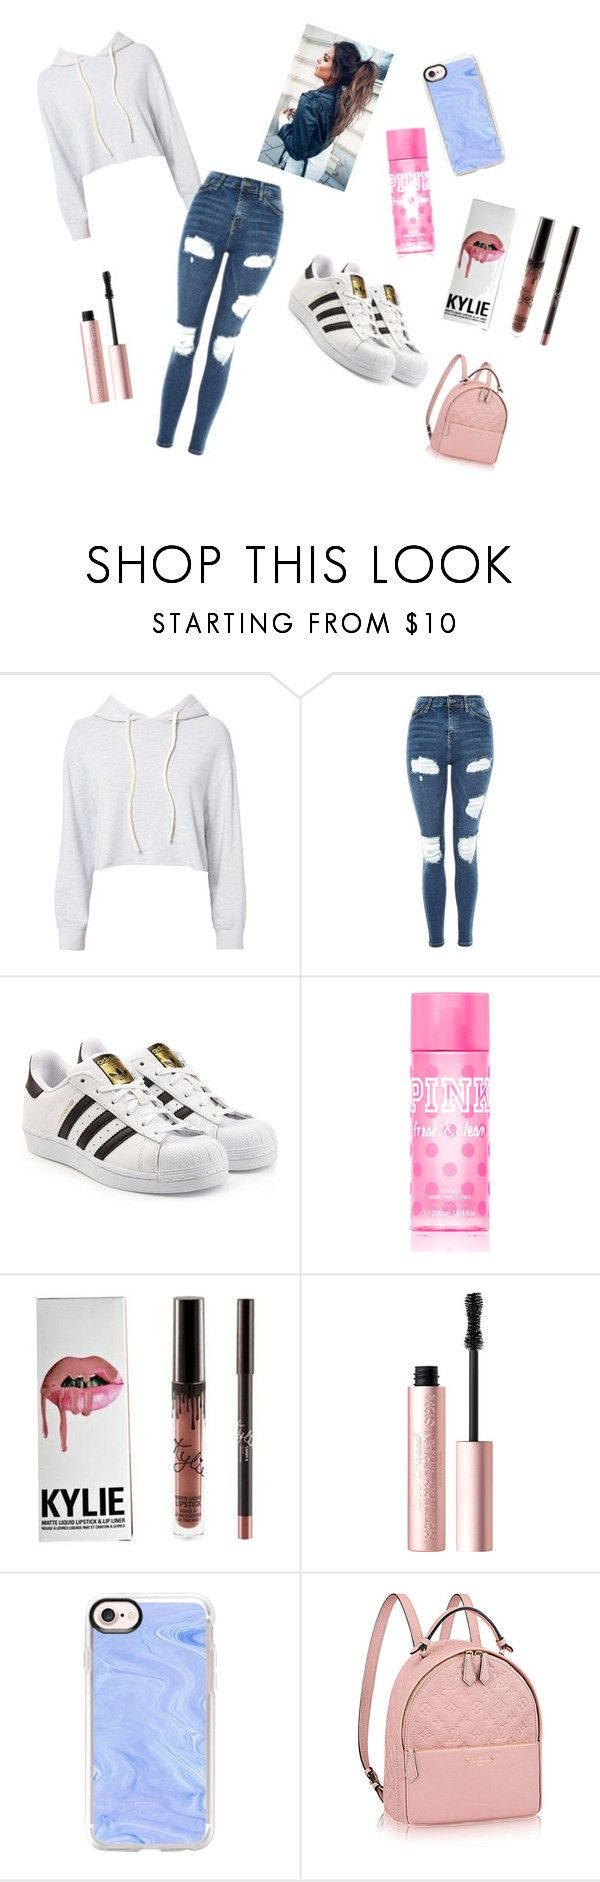 """Day out shopping with friends"" by maddy-lane235 on Polyvore featuring Monrow, Topshop, adidas Originals, Victoria's Secret PINK, Too Faced Cosmetics and Casetify"